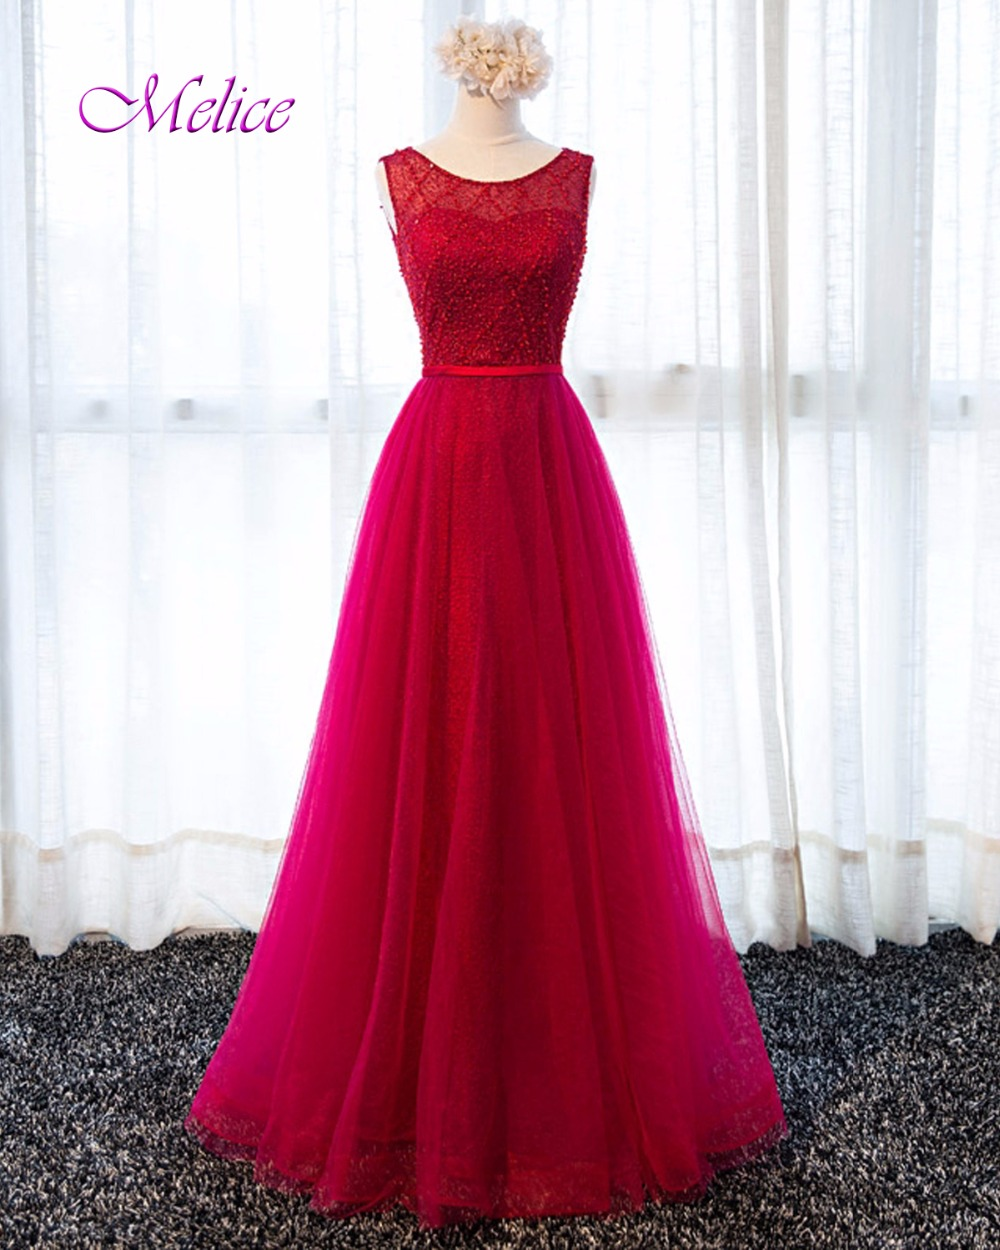 Melice New Design Gorgeous Lace Floor-Length Prom Dress 2019 Beaded Scoop Neck Sashes Formal Party Gown Robe De Soiree Hot Sale